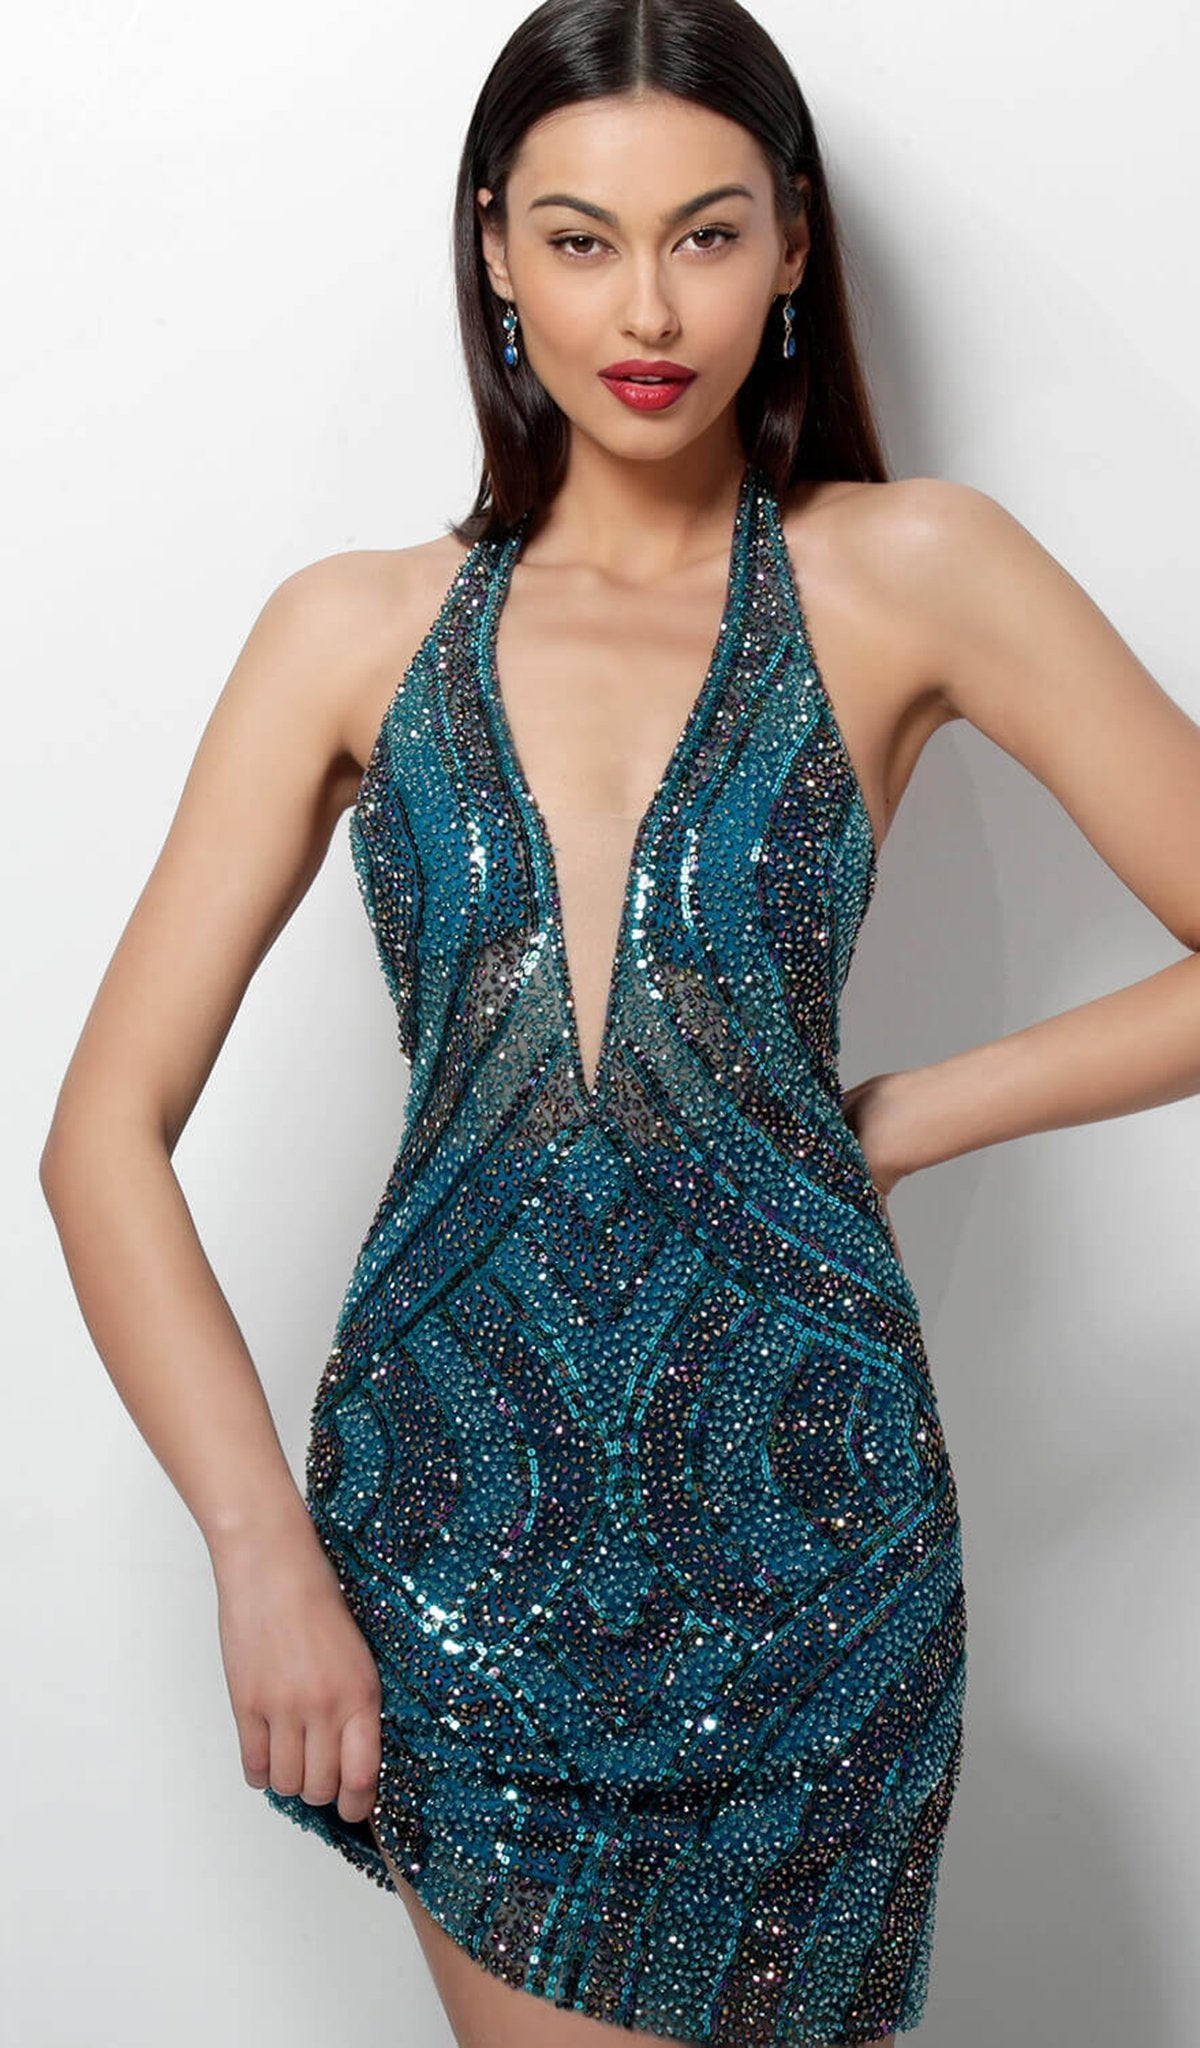 Jovani - Beaded Halter Open Back Cocktail Dress 65350 In Blue and Green